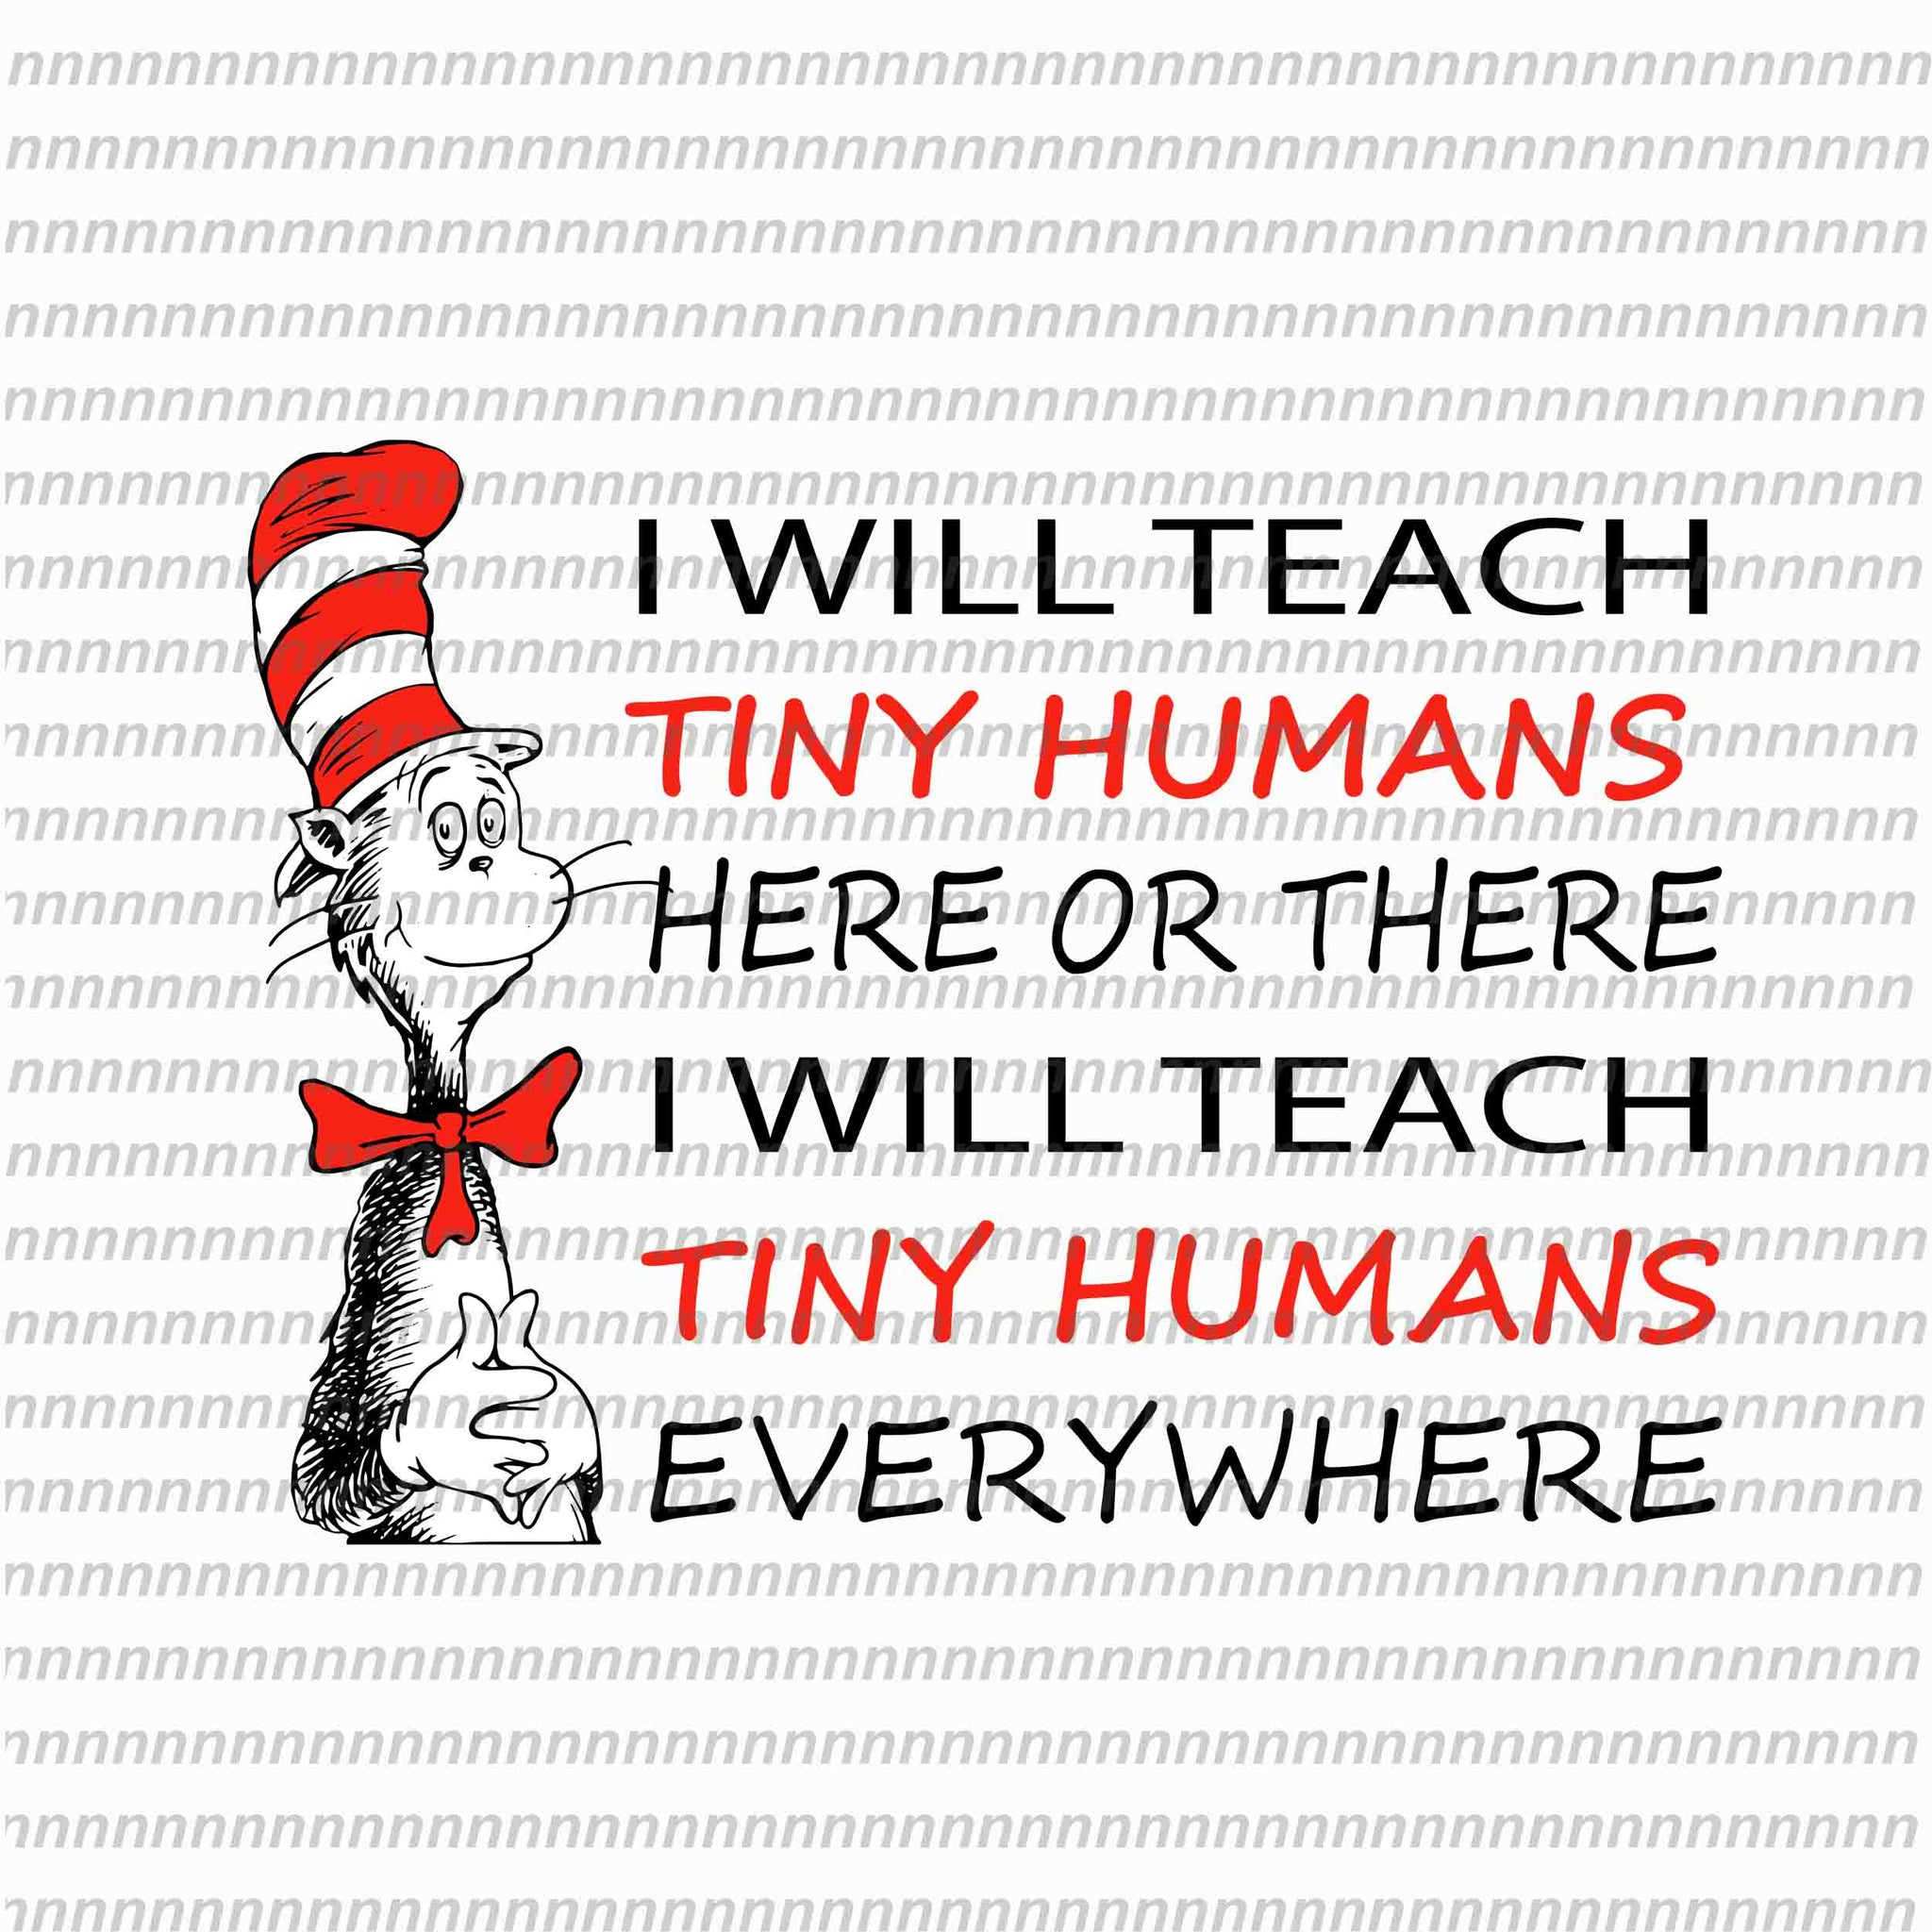 I will teach tiny humans here or there , dr seuss svg,dr seuss vector, dr seuss quote, dr seuss design, Cat in the hat svg, thing 1 thing 2 thing 3, svg, png, dxf, eps file